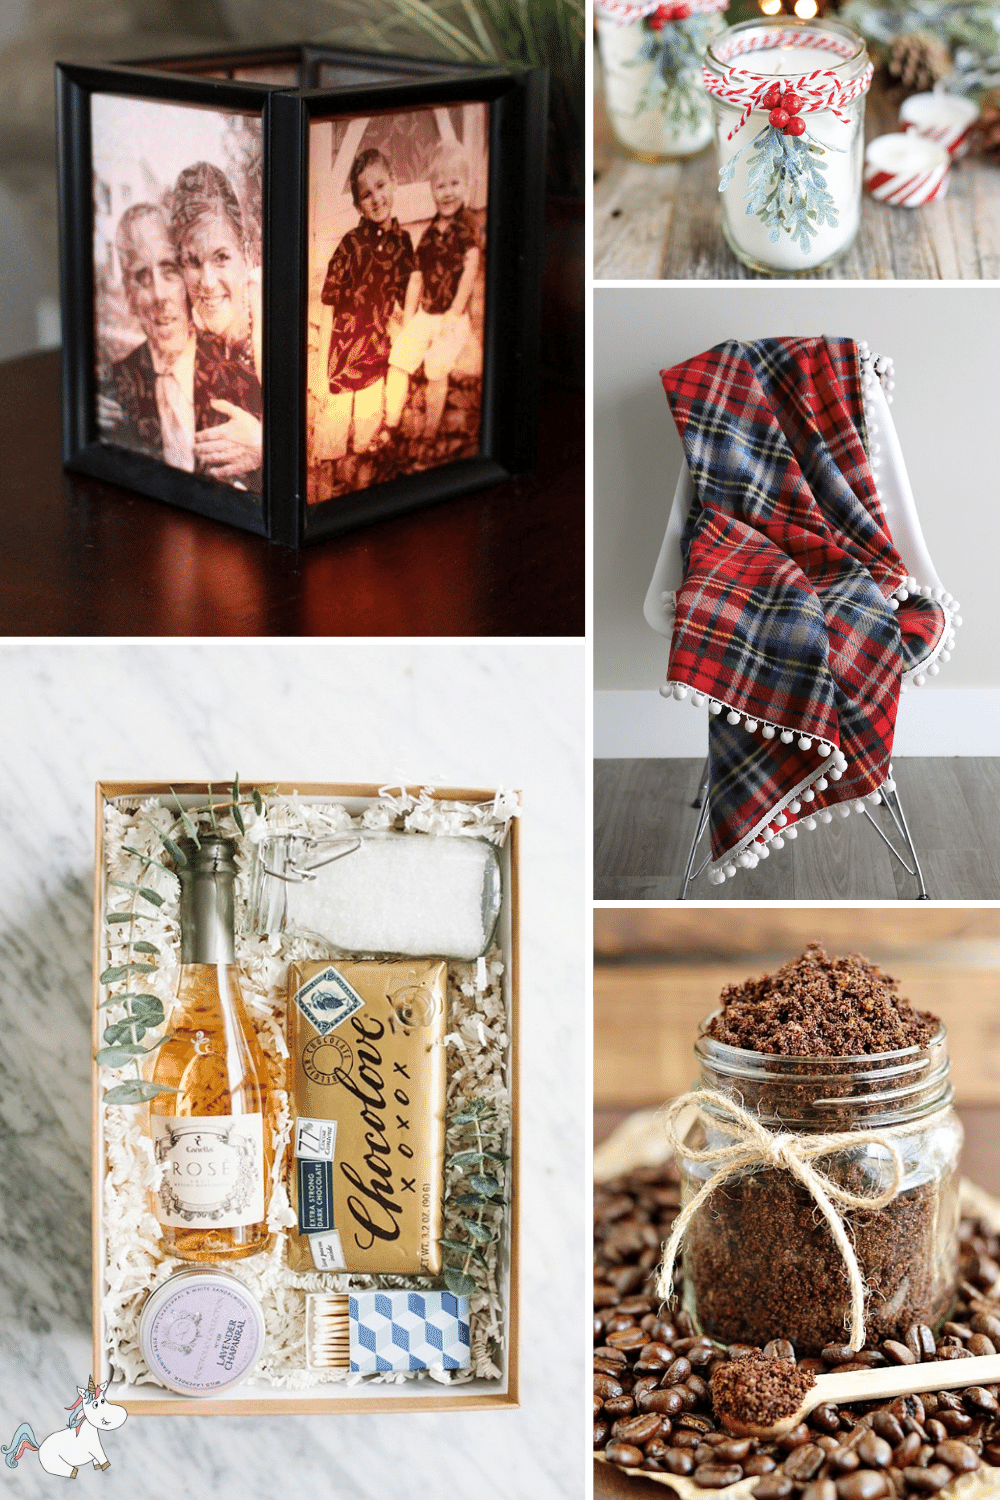 Selection of diy Christmas gifts ideas